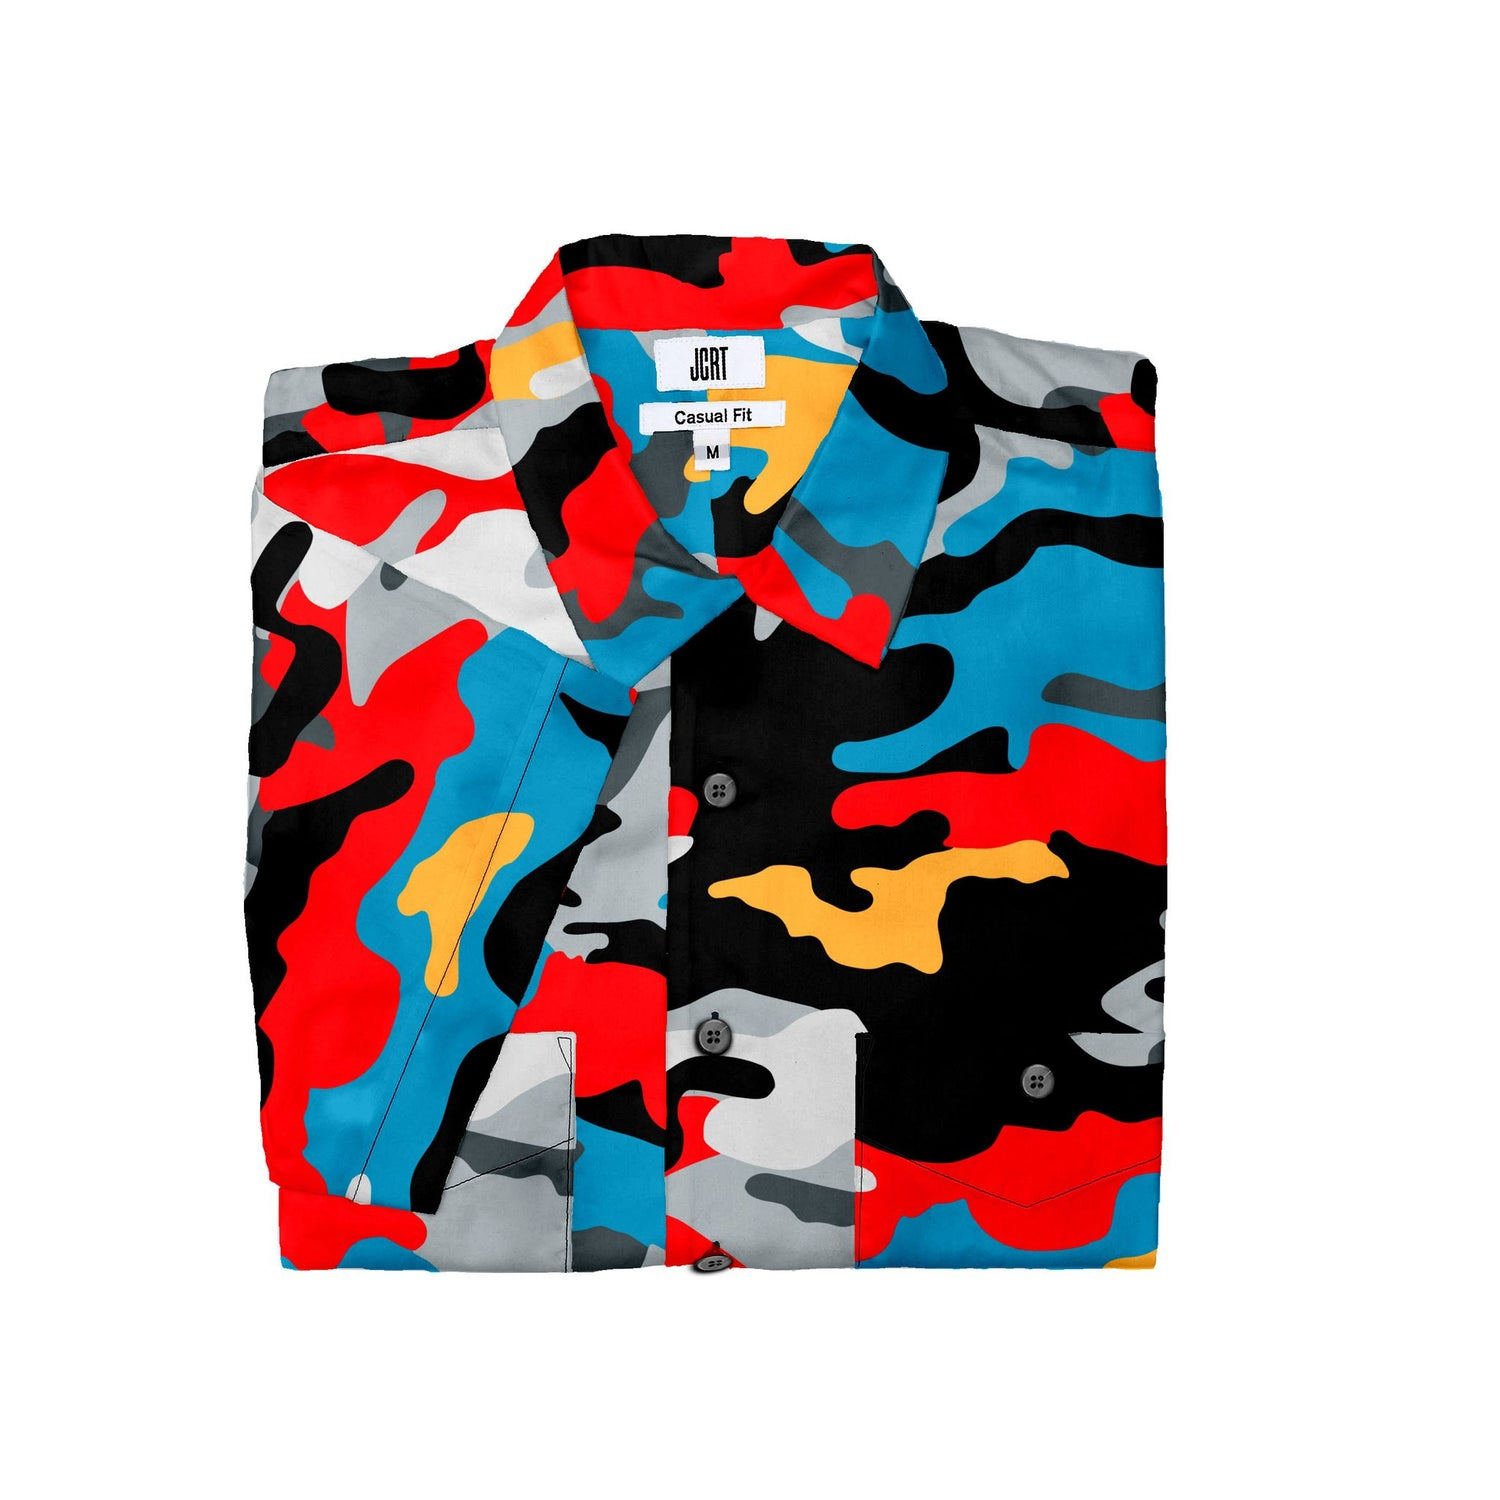 The Out Of The Blue Camouflage Short Sleeve Shirt